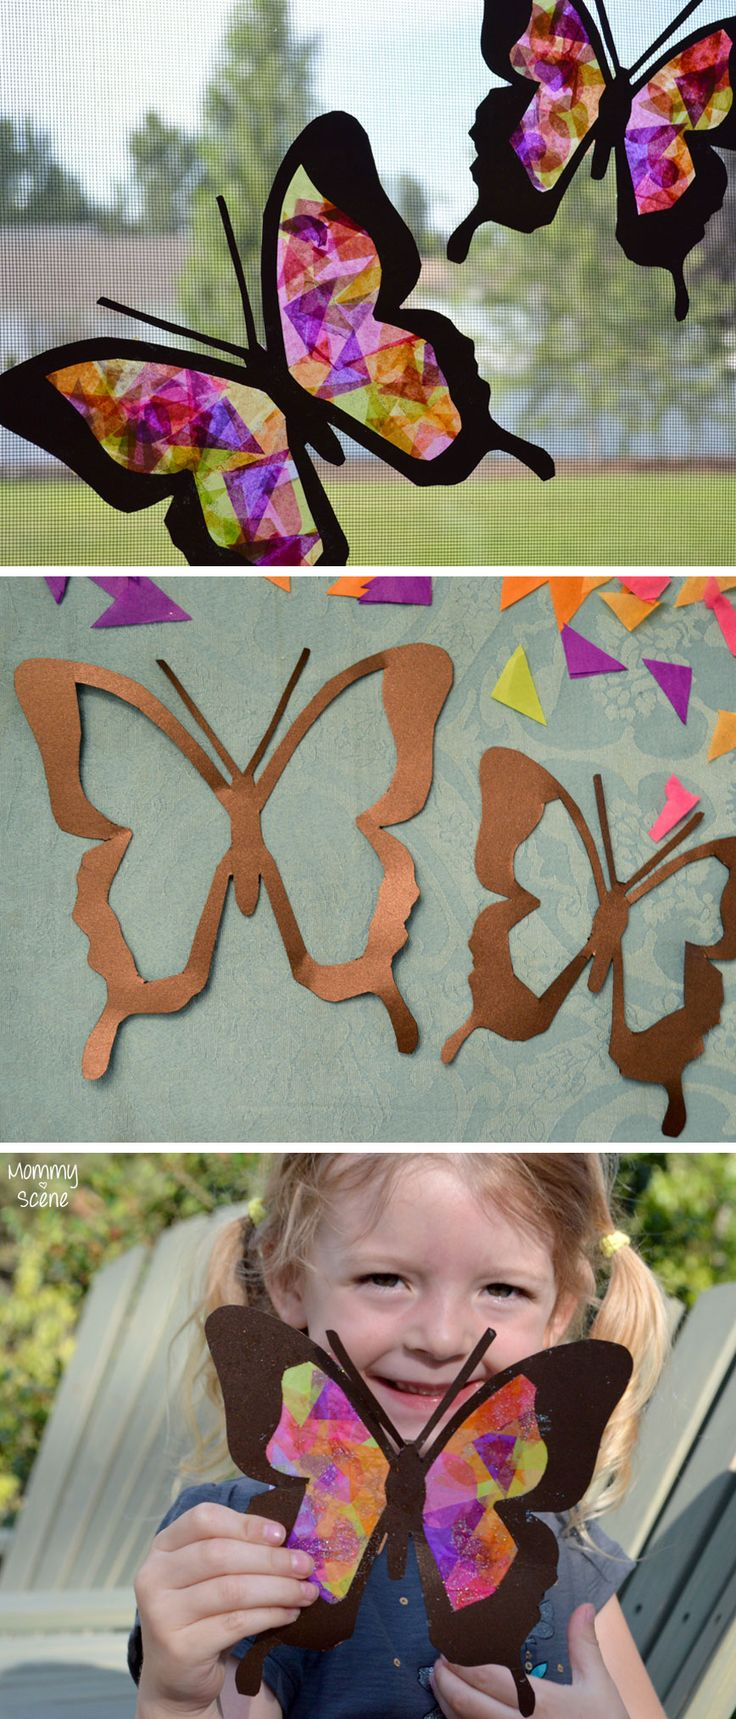 Brighten up your windows with these DIY tissue paper butterfly sun catchers! An easy kids craft for all ages. - Mommy Scene